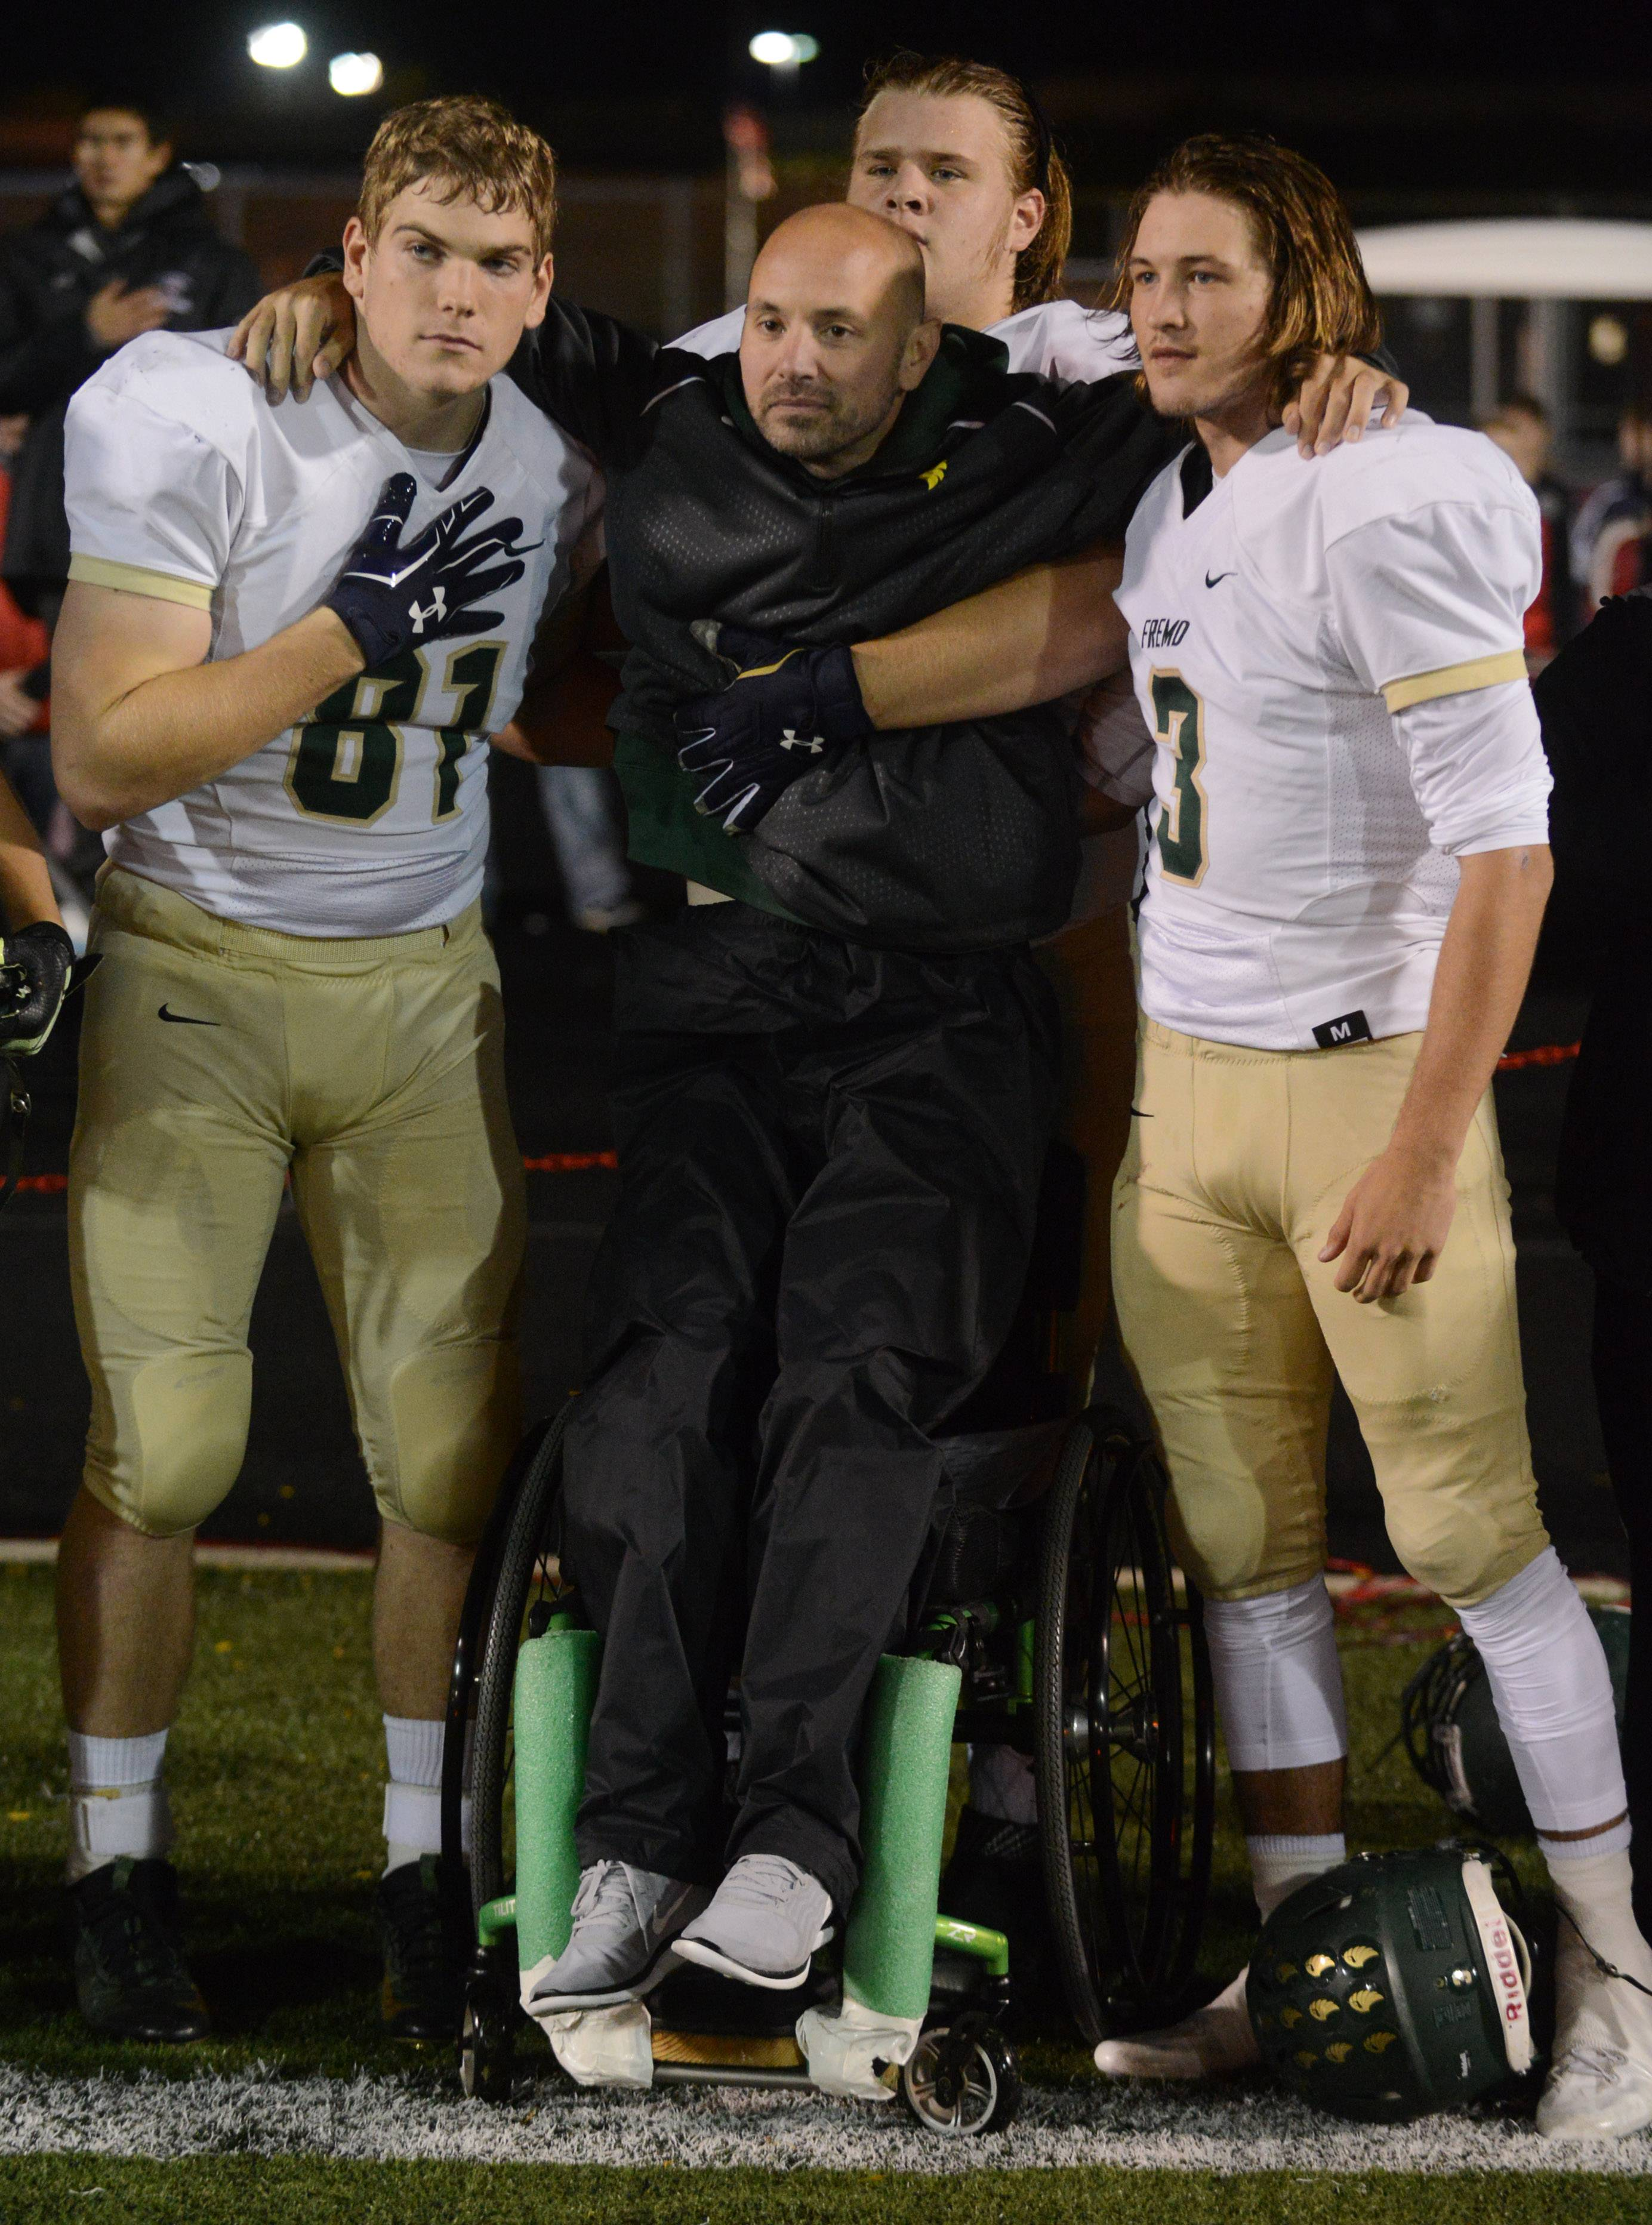 Fremd football players, from left, Austin Schwantz, Ethan Hanson and Jake Haas, help the team's special team's coach, paraplegic Navy veteran Brock Schiffer, stand during the National Anthem prior to Friday's game against Palatine. The gesture was meant as a counterpoint to those who would choose to kneel during the anthem as a protest.